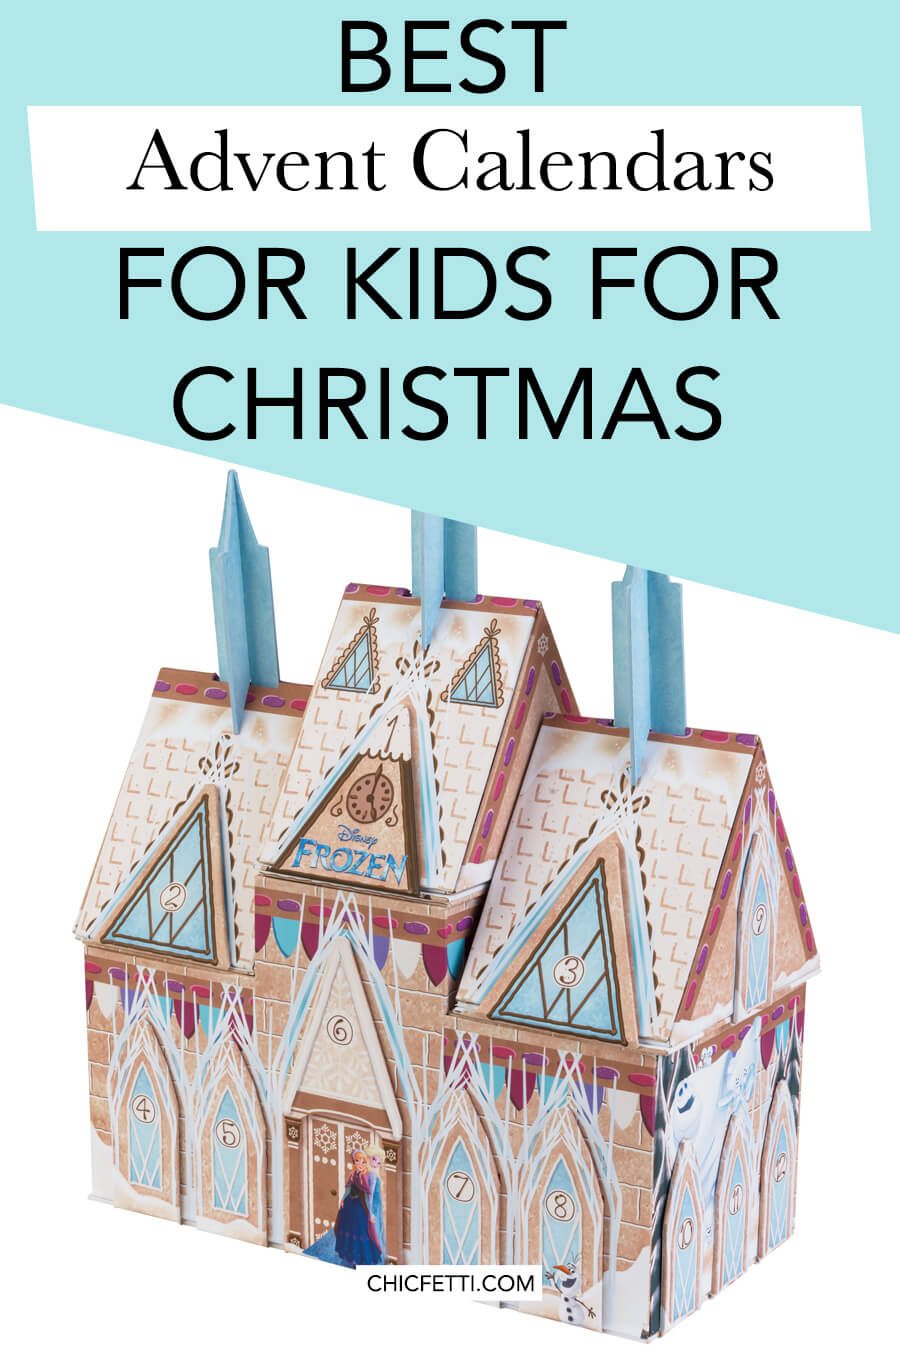 Get the best kids advent calendars for Christmas. Your kids will absolutely love these advent calendars and enjoy using them count down to Christmas. #advent #adventcalendar #christmas #christmasideas #christmasgifts #christmasadventcalendar